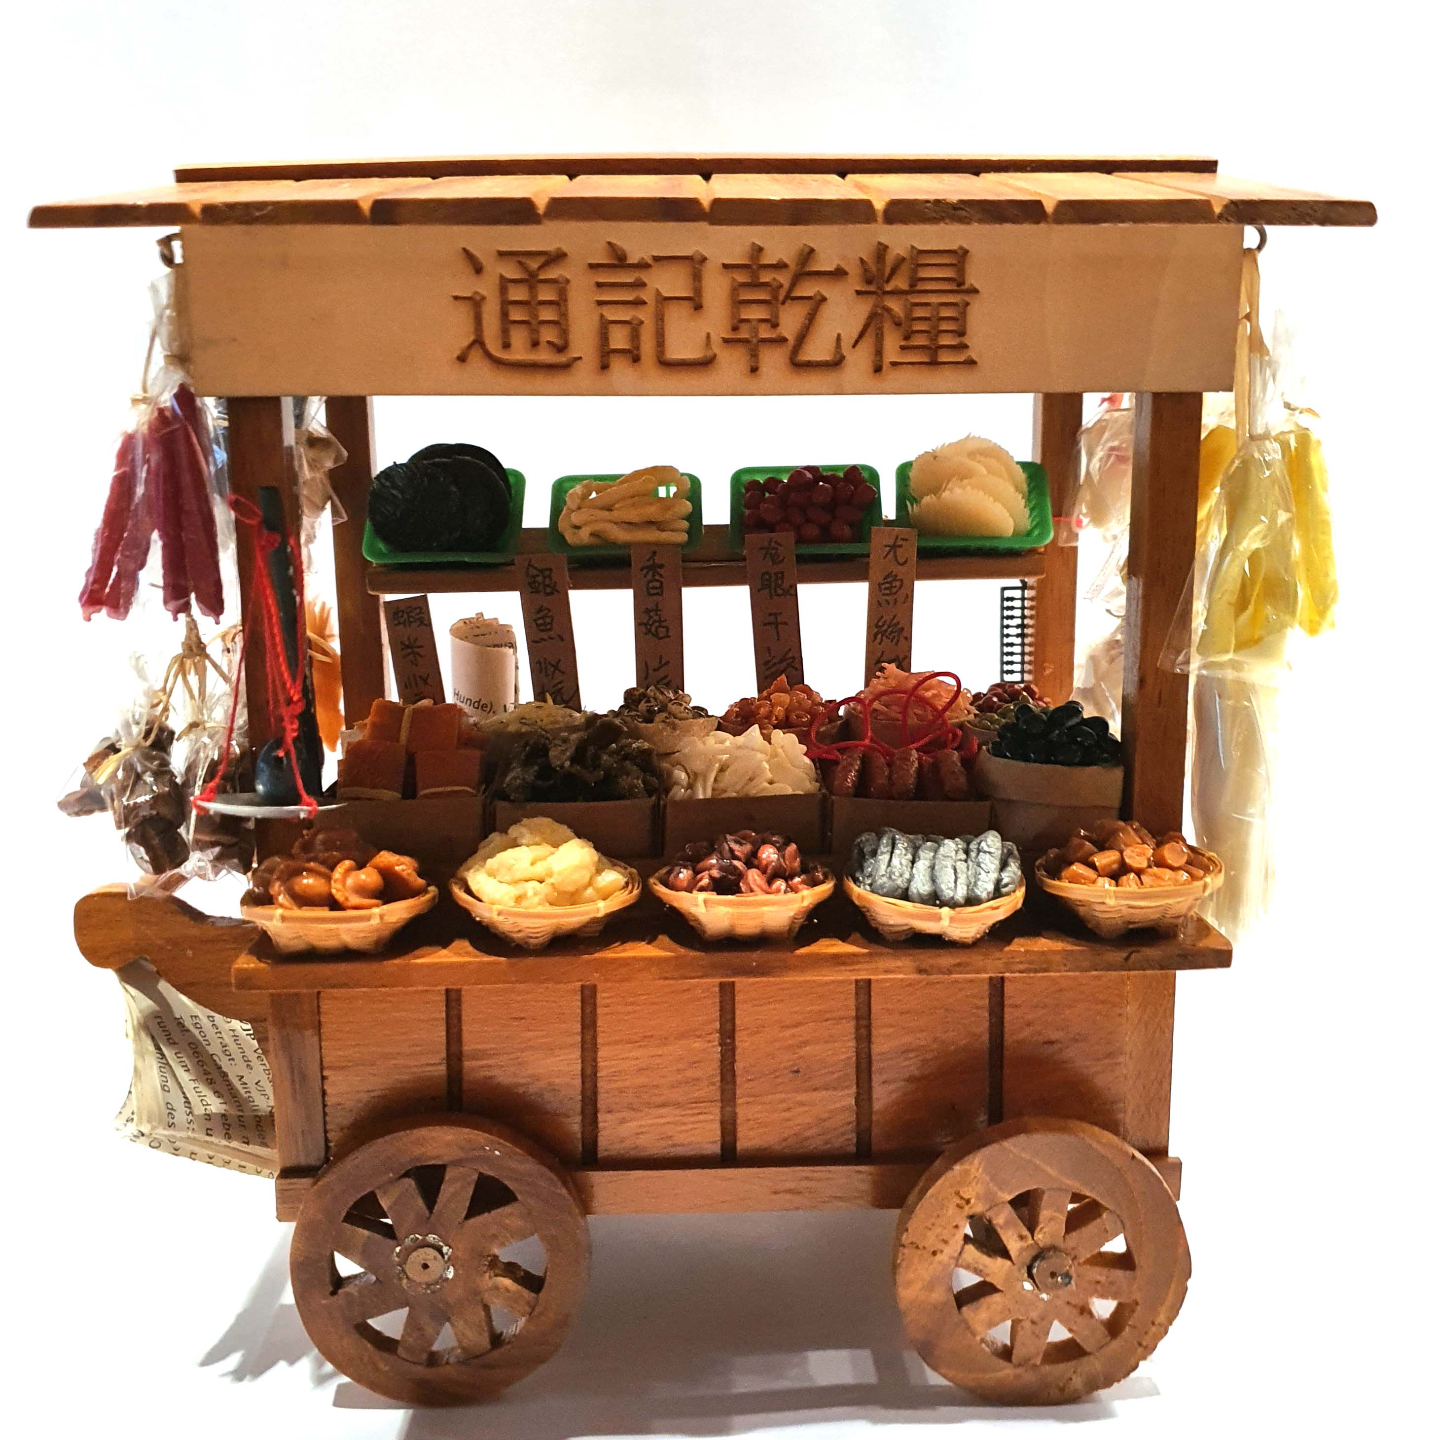 Handmade Miniature: Dried Goods Stall by Madam Ang Miniature World